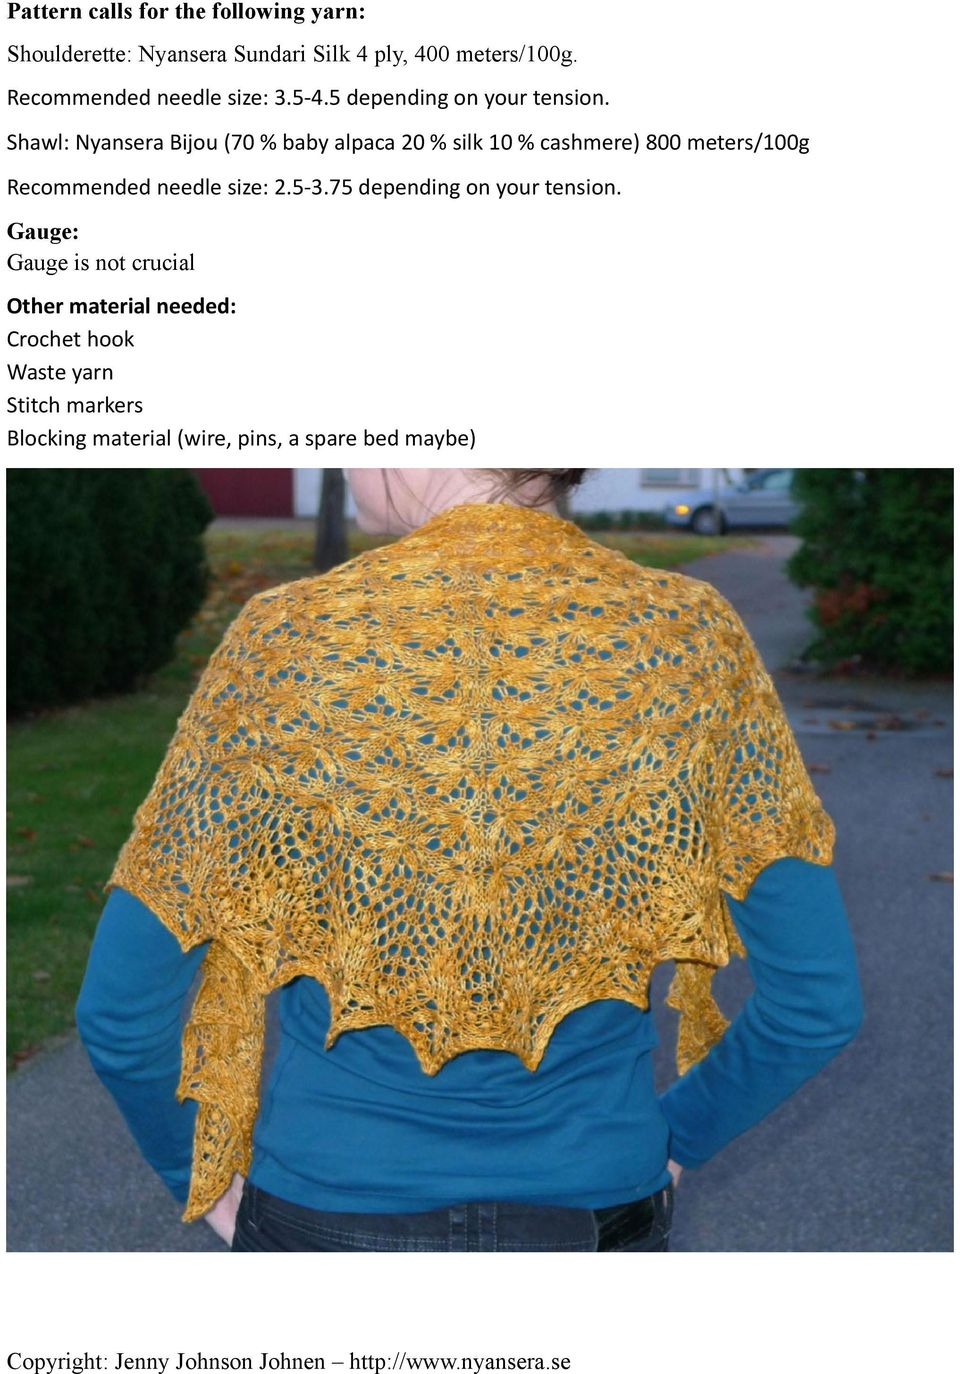 Shawl: Nyansera Bijou (70 % baby alpaca 20 % silk 10 % cashmere) 800 meters/100g Recommended needle size: 2.